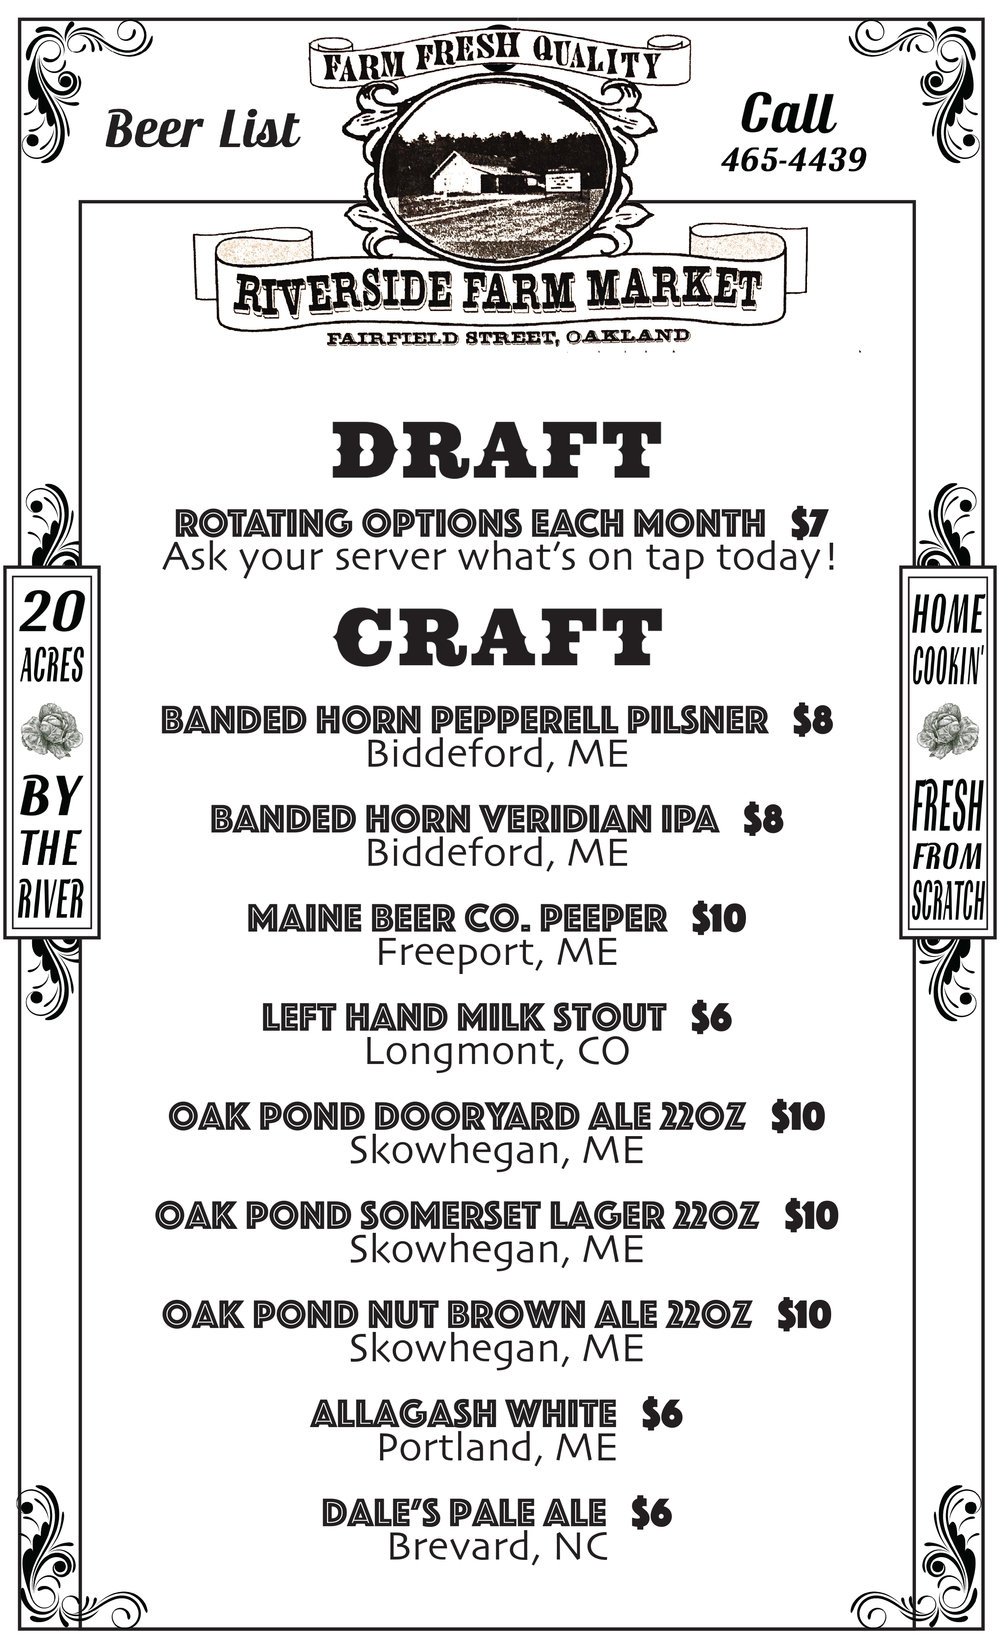 Riverside_CraftBeerList_6_4_18 copy.jpg